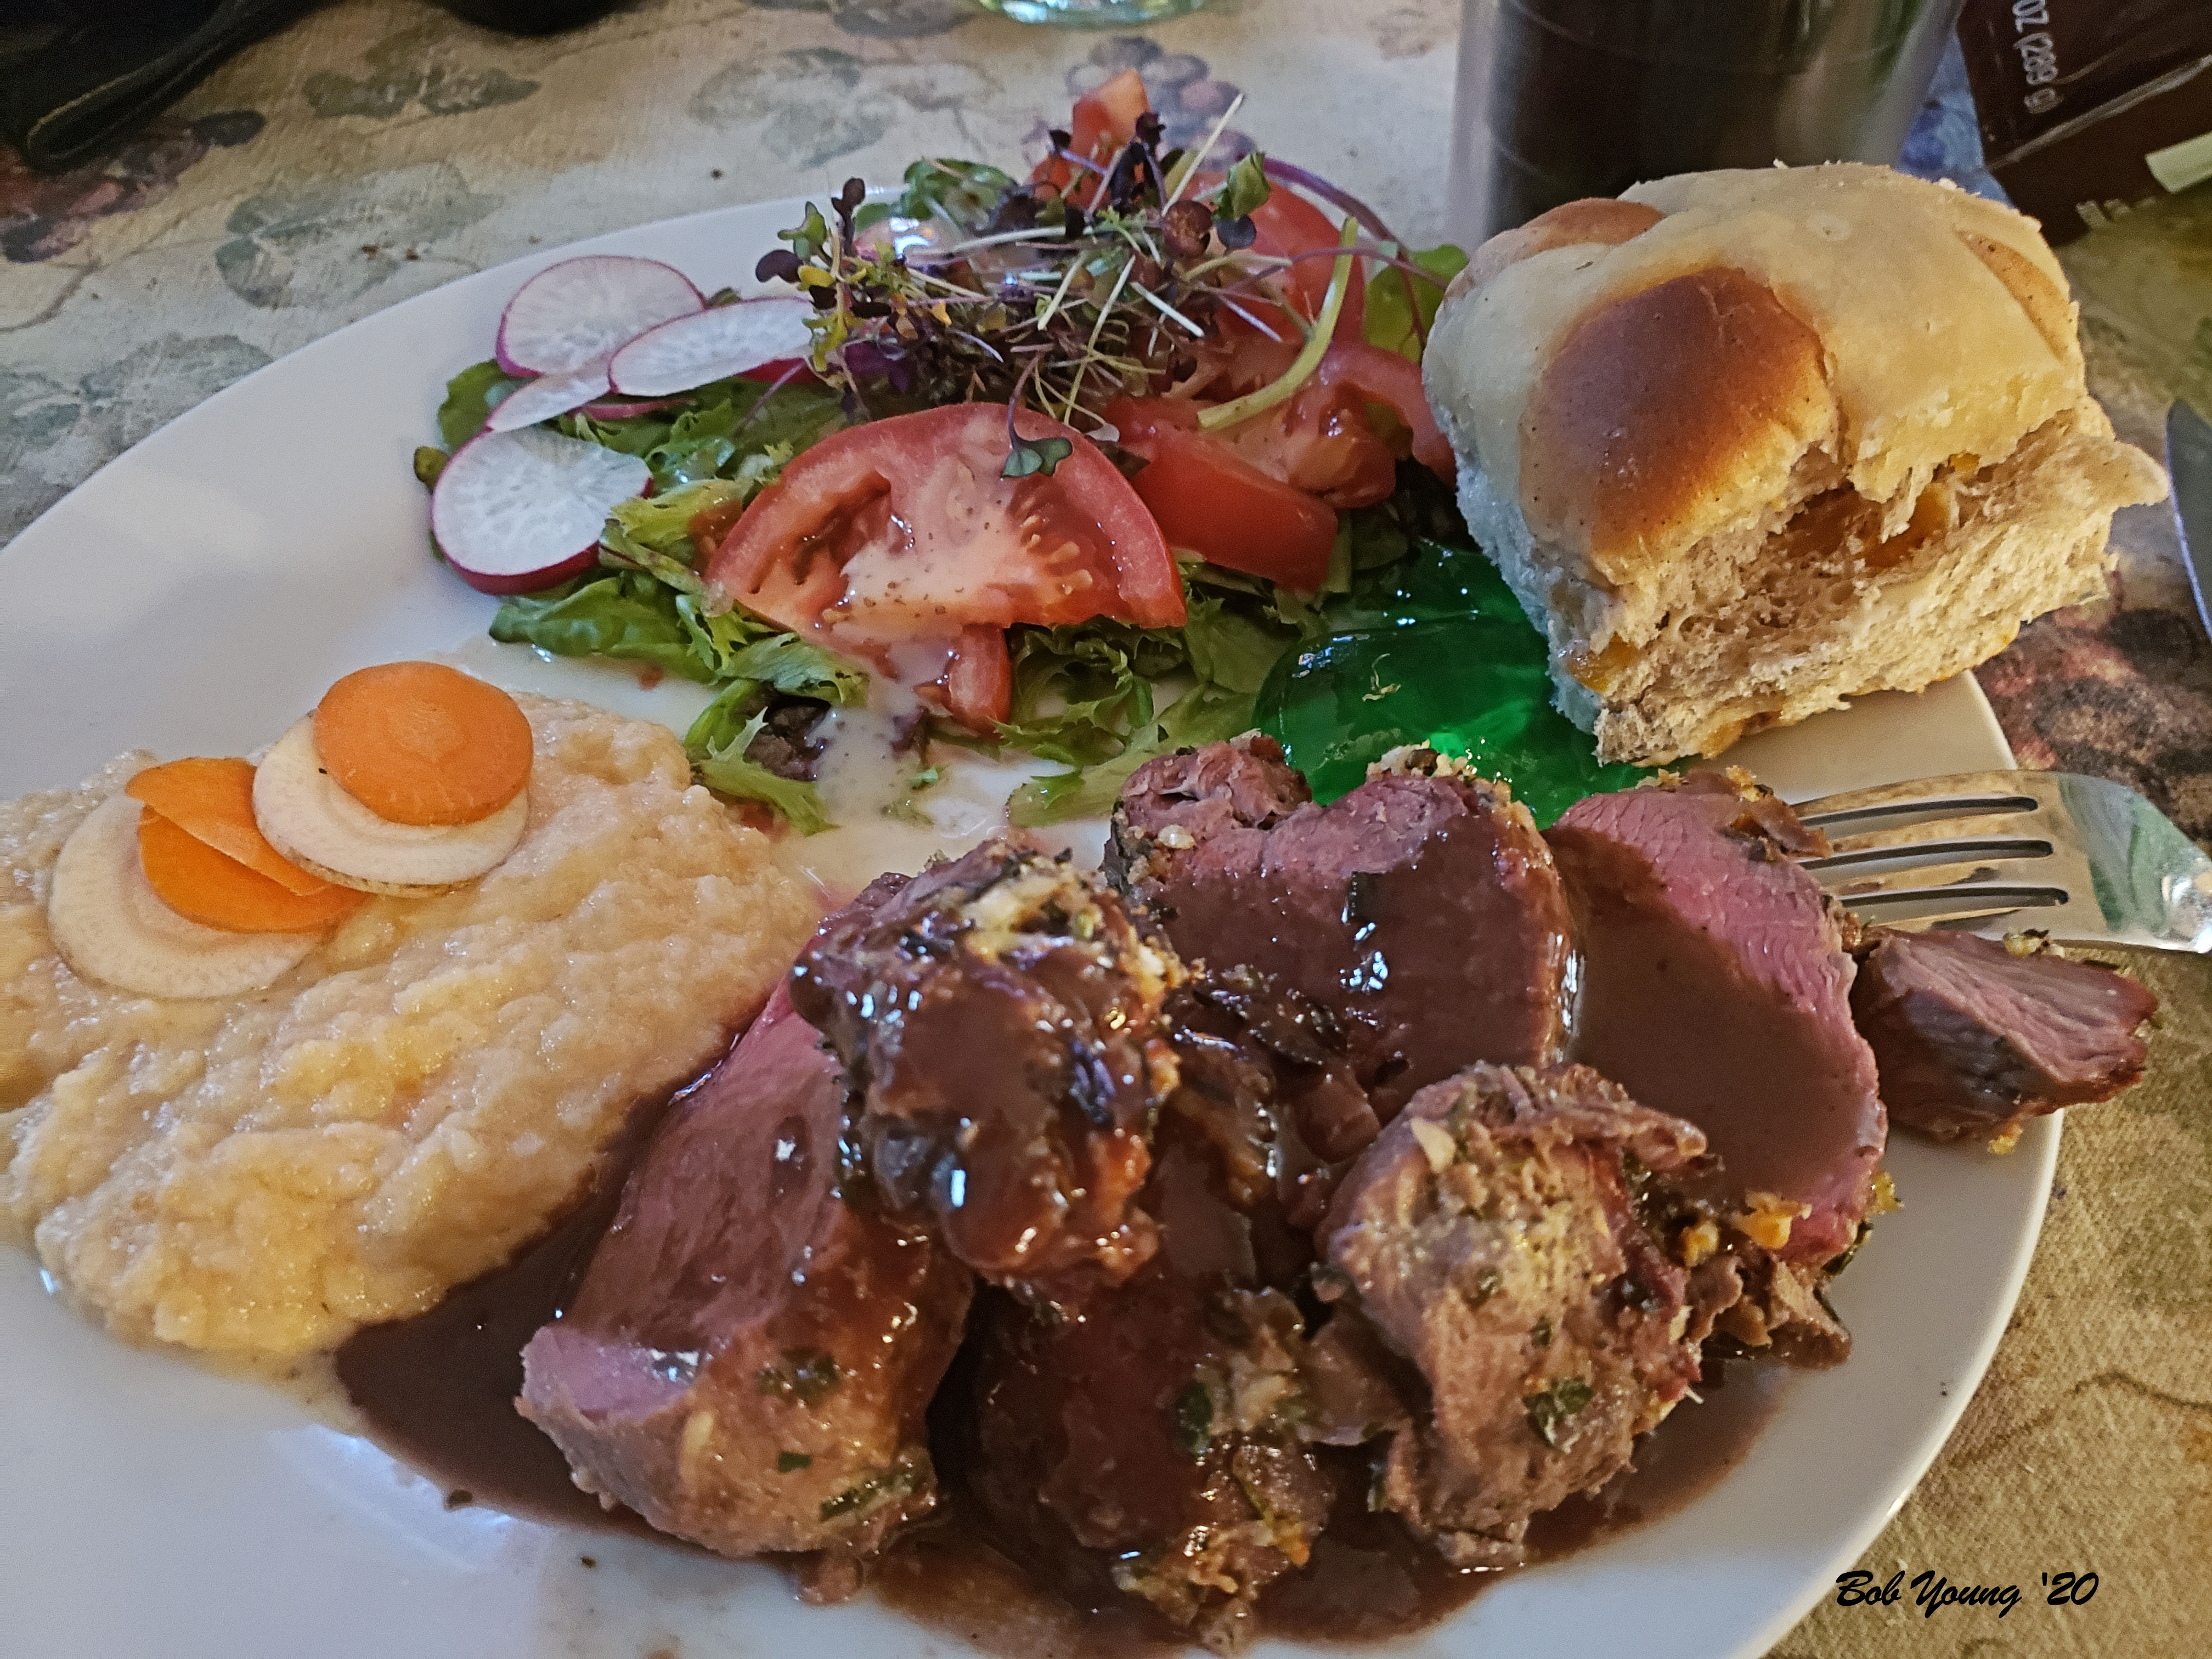 12April2020_1c_Captains-Shack-Easter_Lamb-Pureed-TurnipandCarrot-Green-Salad_Acme-HotCrossBun